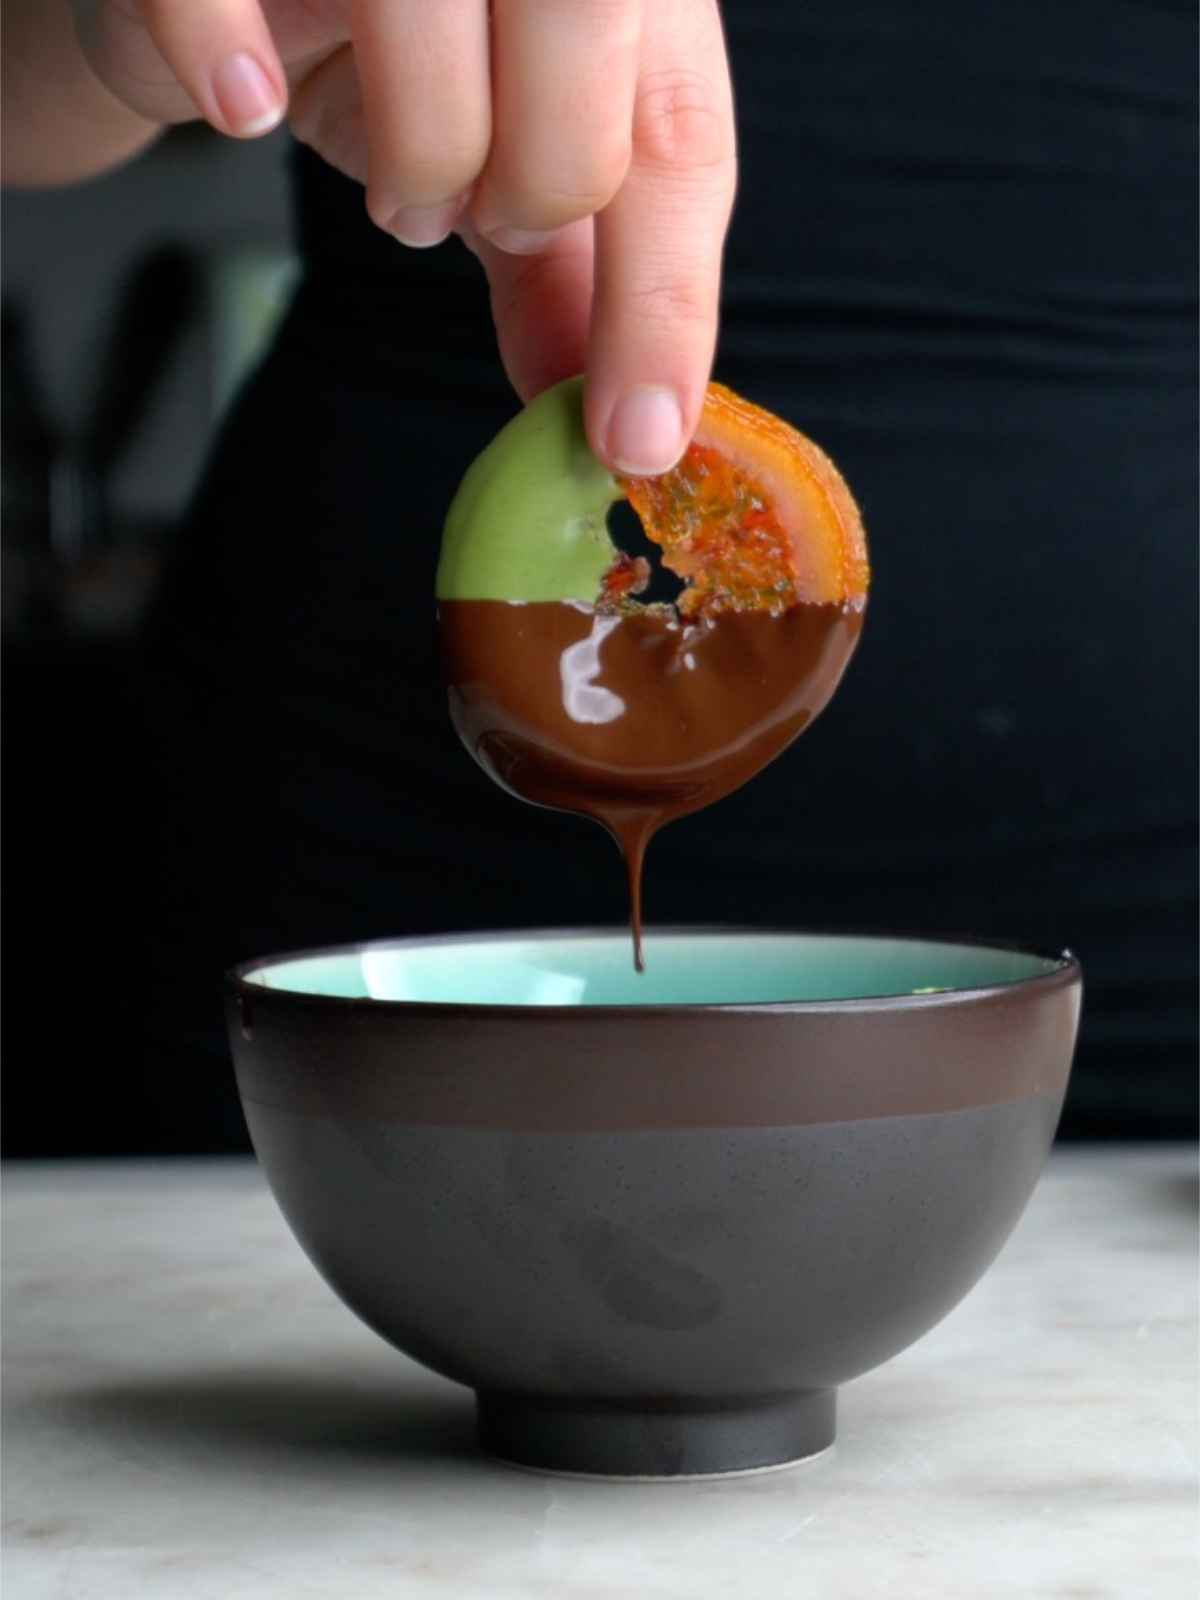 Dipping a candied orange in chocolate.